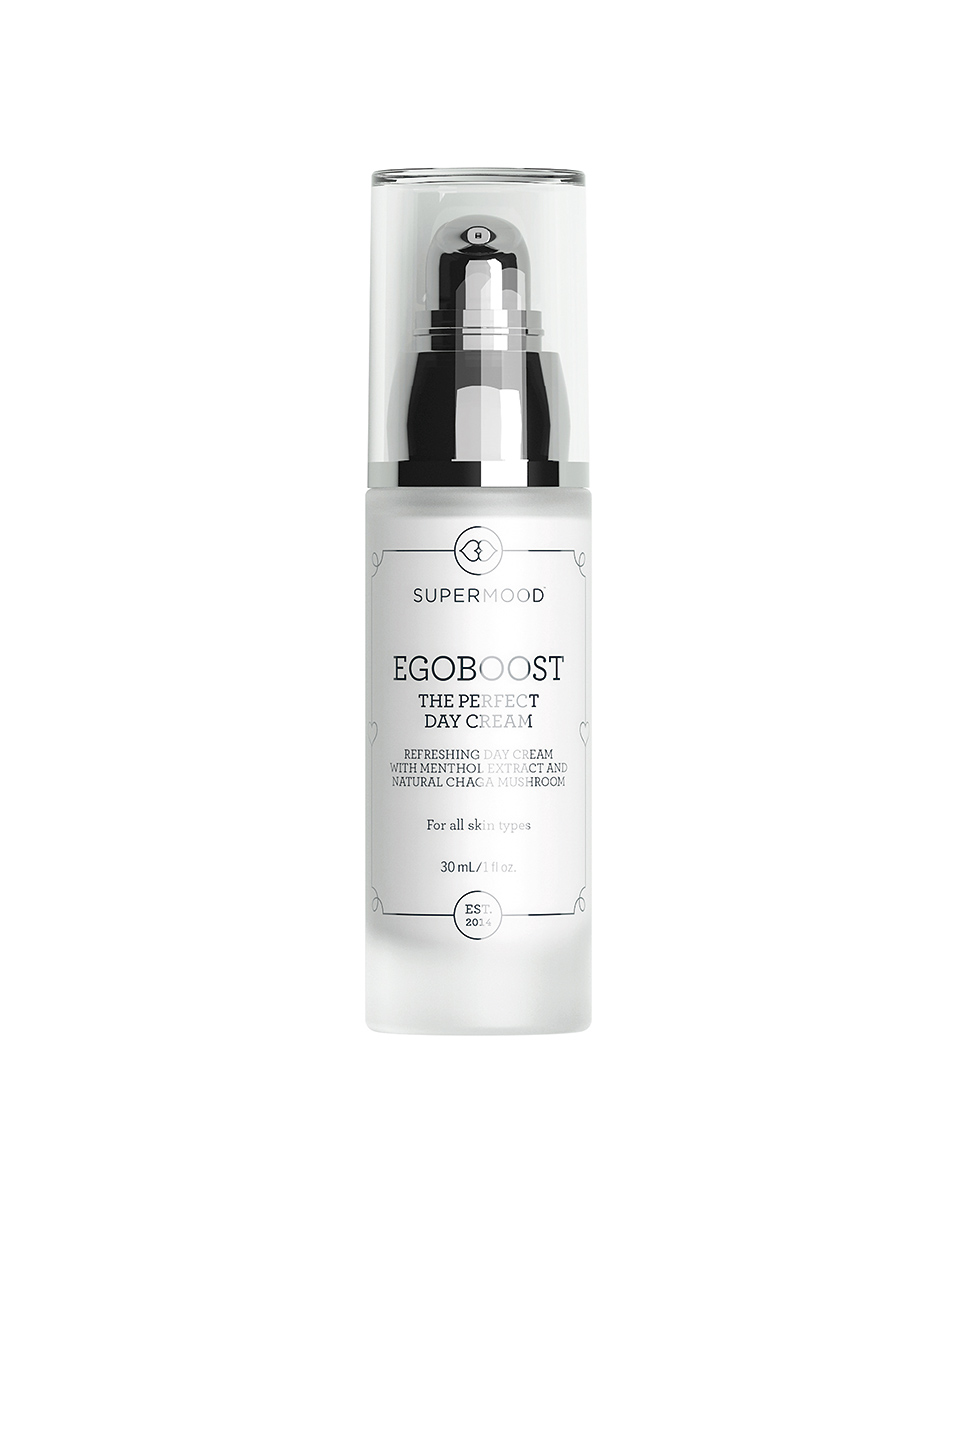 SUPERMOOD Egoboost The Perfect Day Cream in